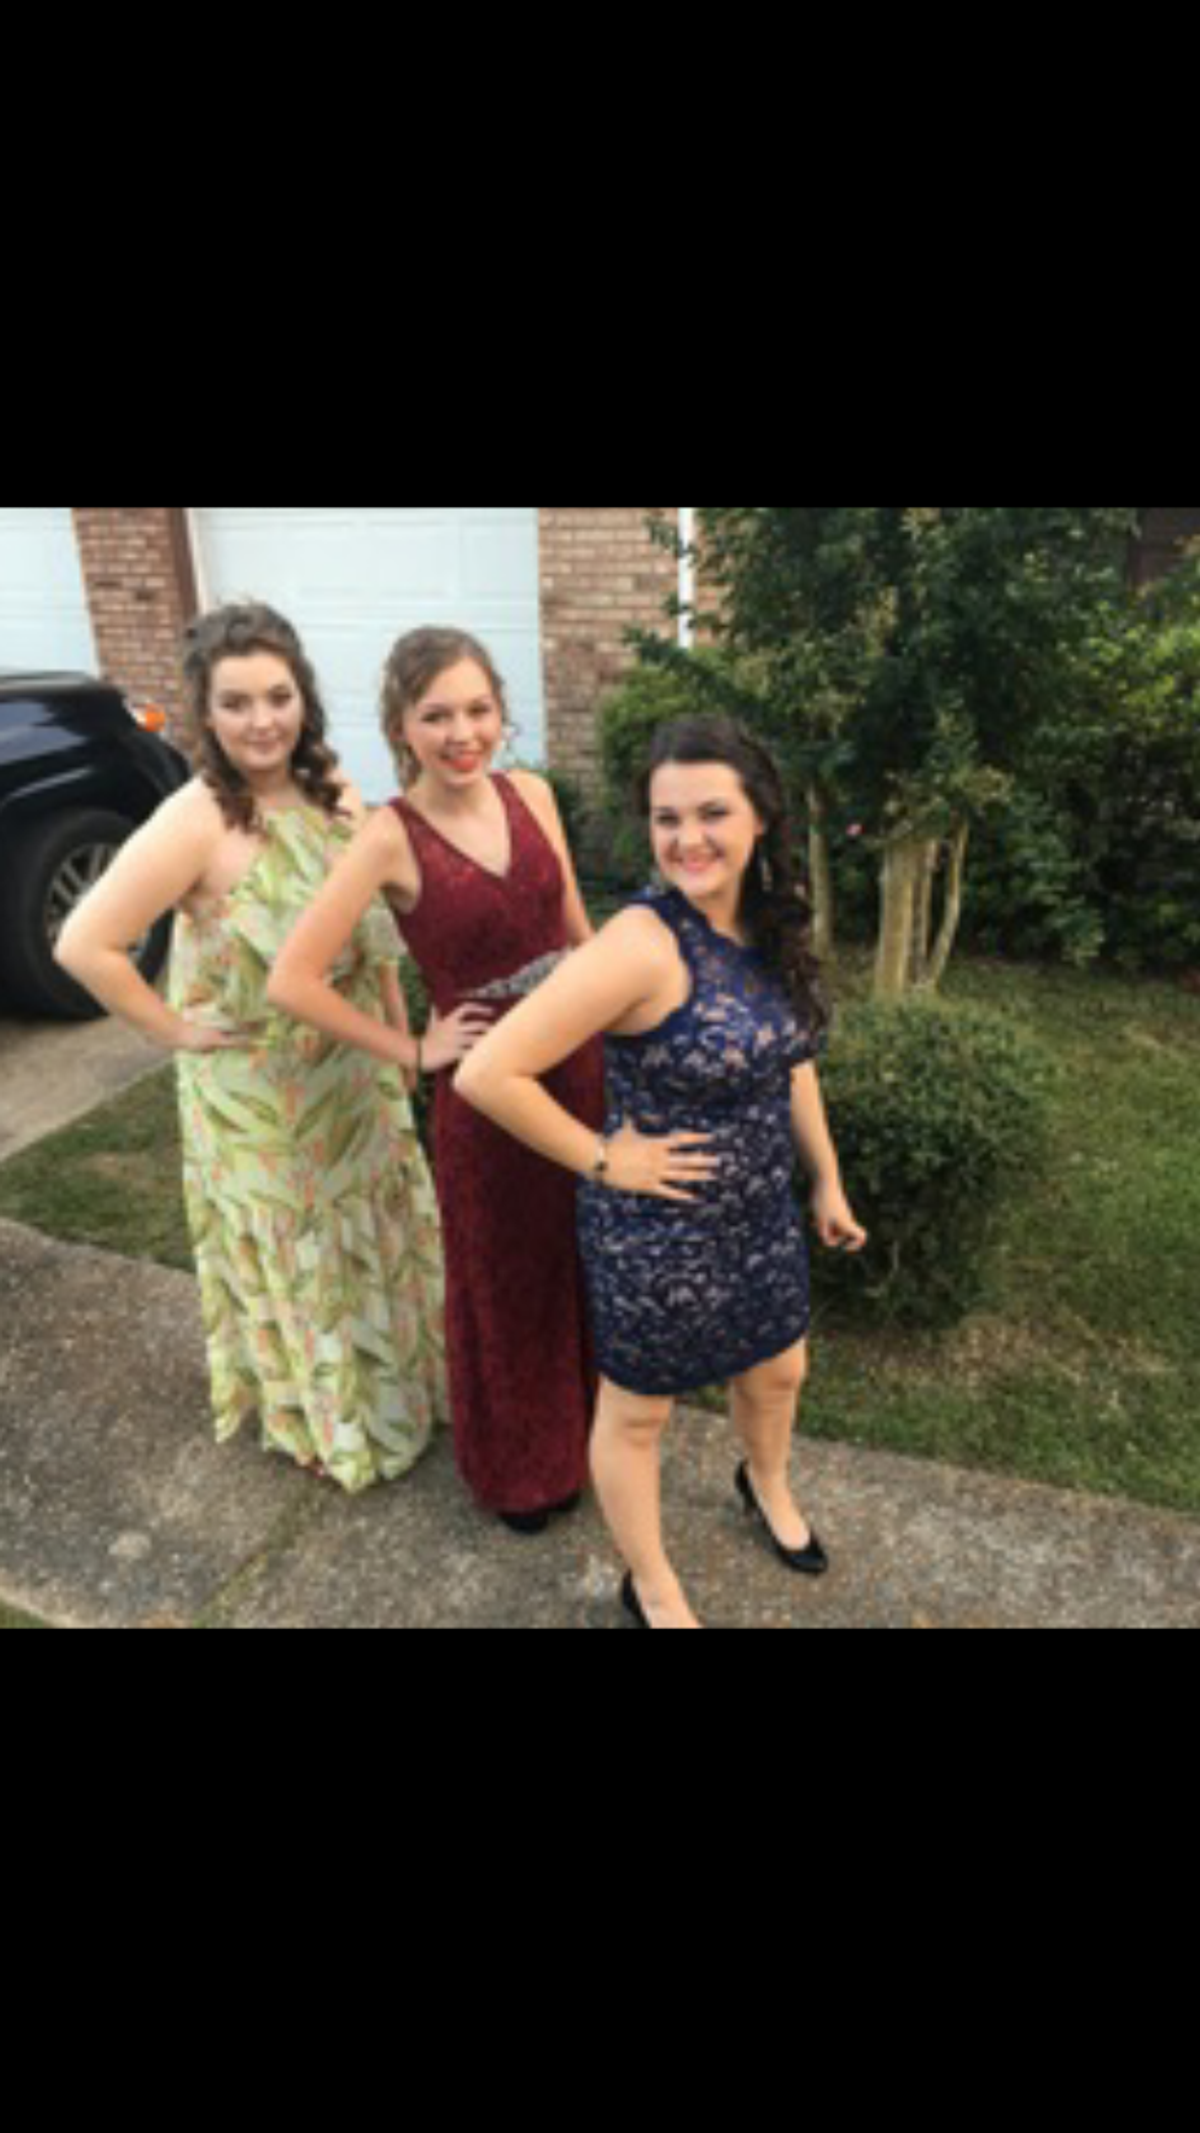 Underdressing At Homecoming